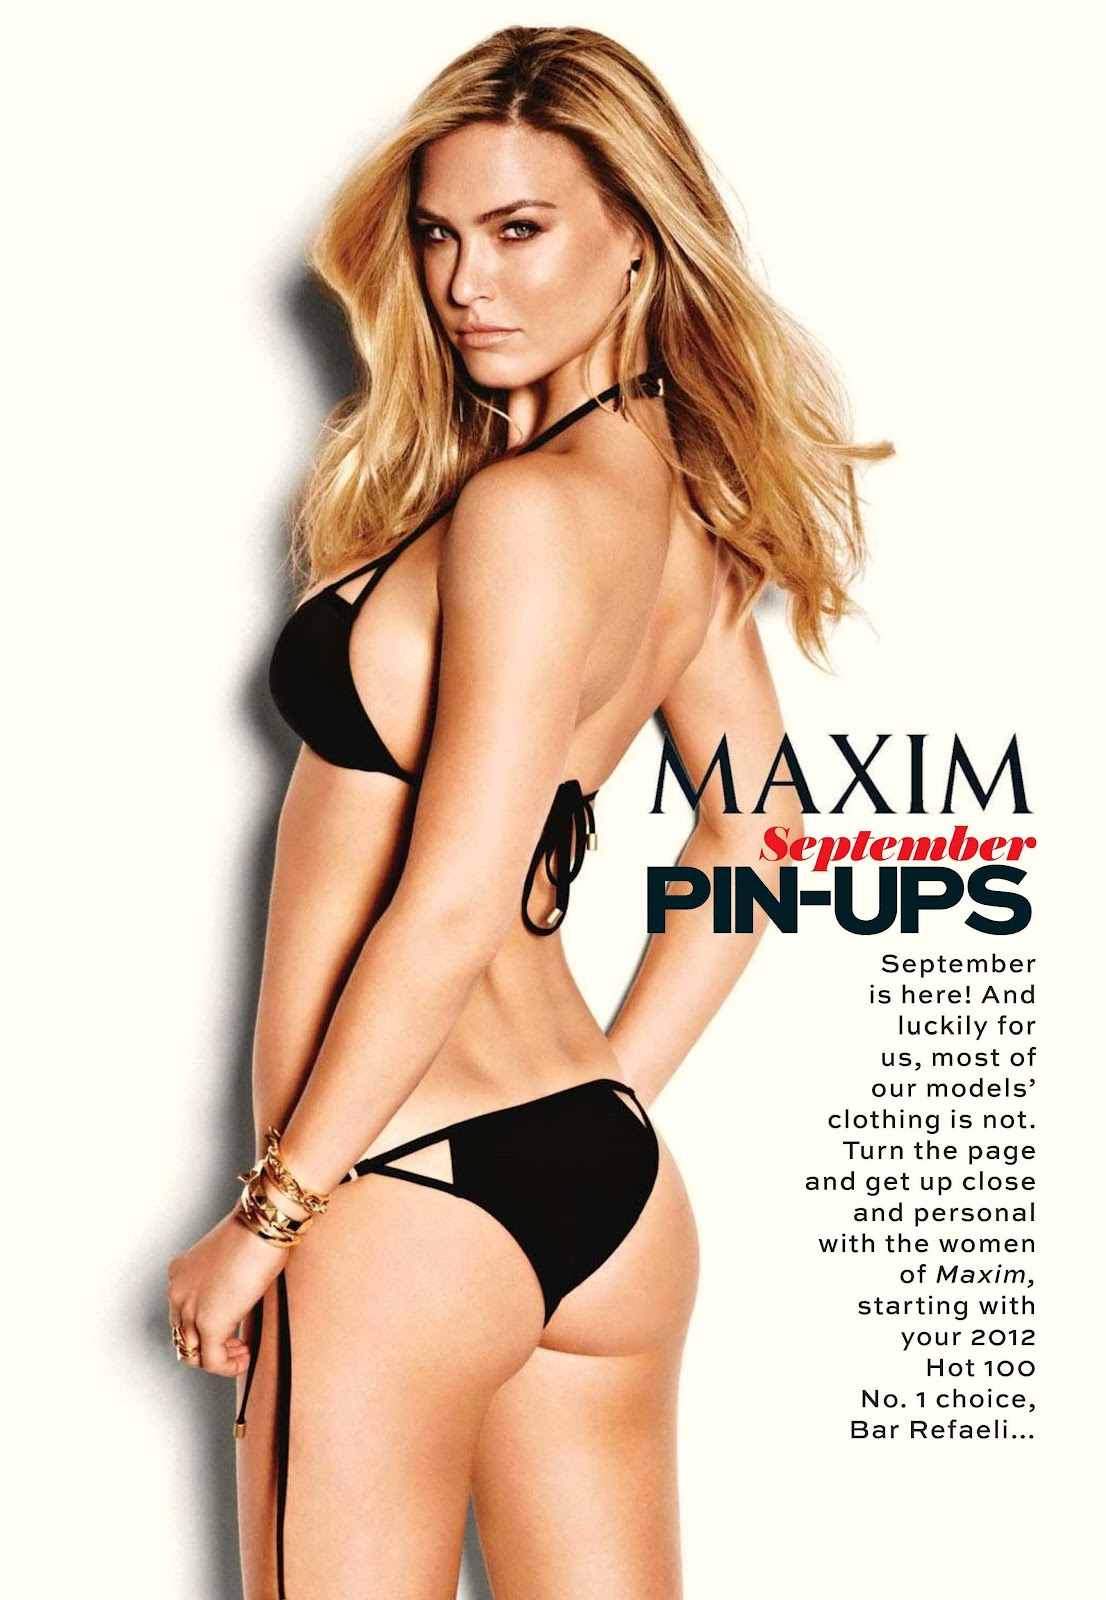 http://3.bp.blogspot.com/-9b-nbA1RqC8/UCtxzRQLDII/AAAAAAAALnA/elOn5gST034/s1600/Bar+Refaeli-+Bikini+Babe+in+Maxim+magazine+September+2012+issue.jpg